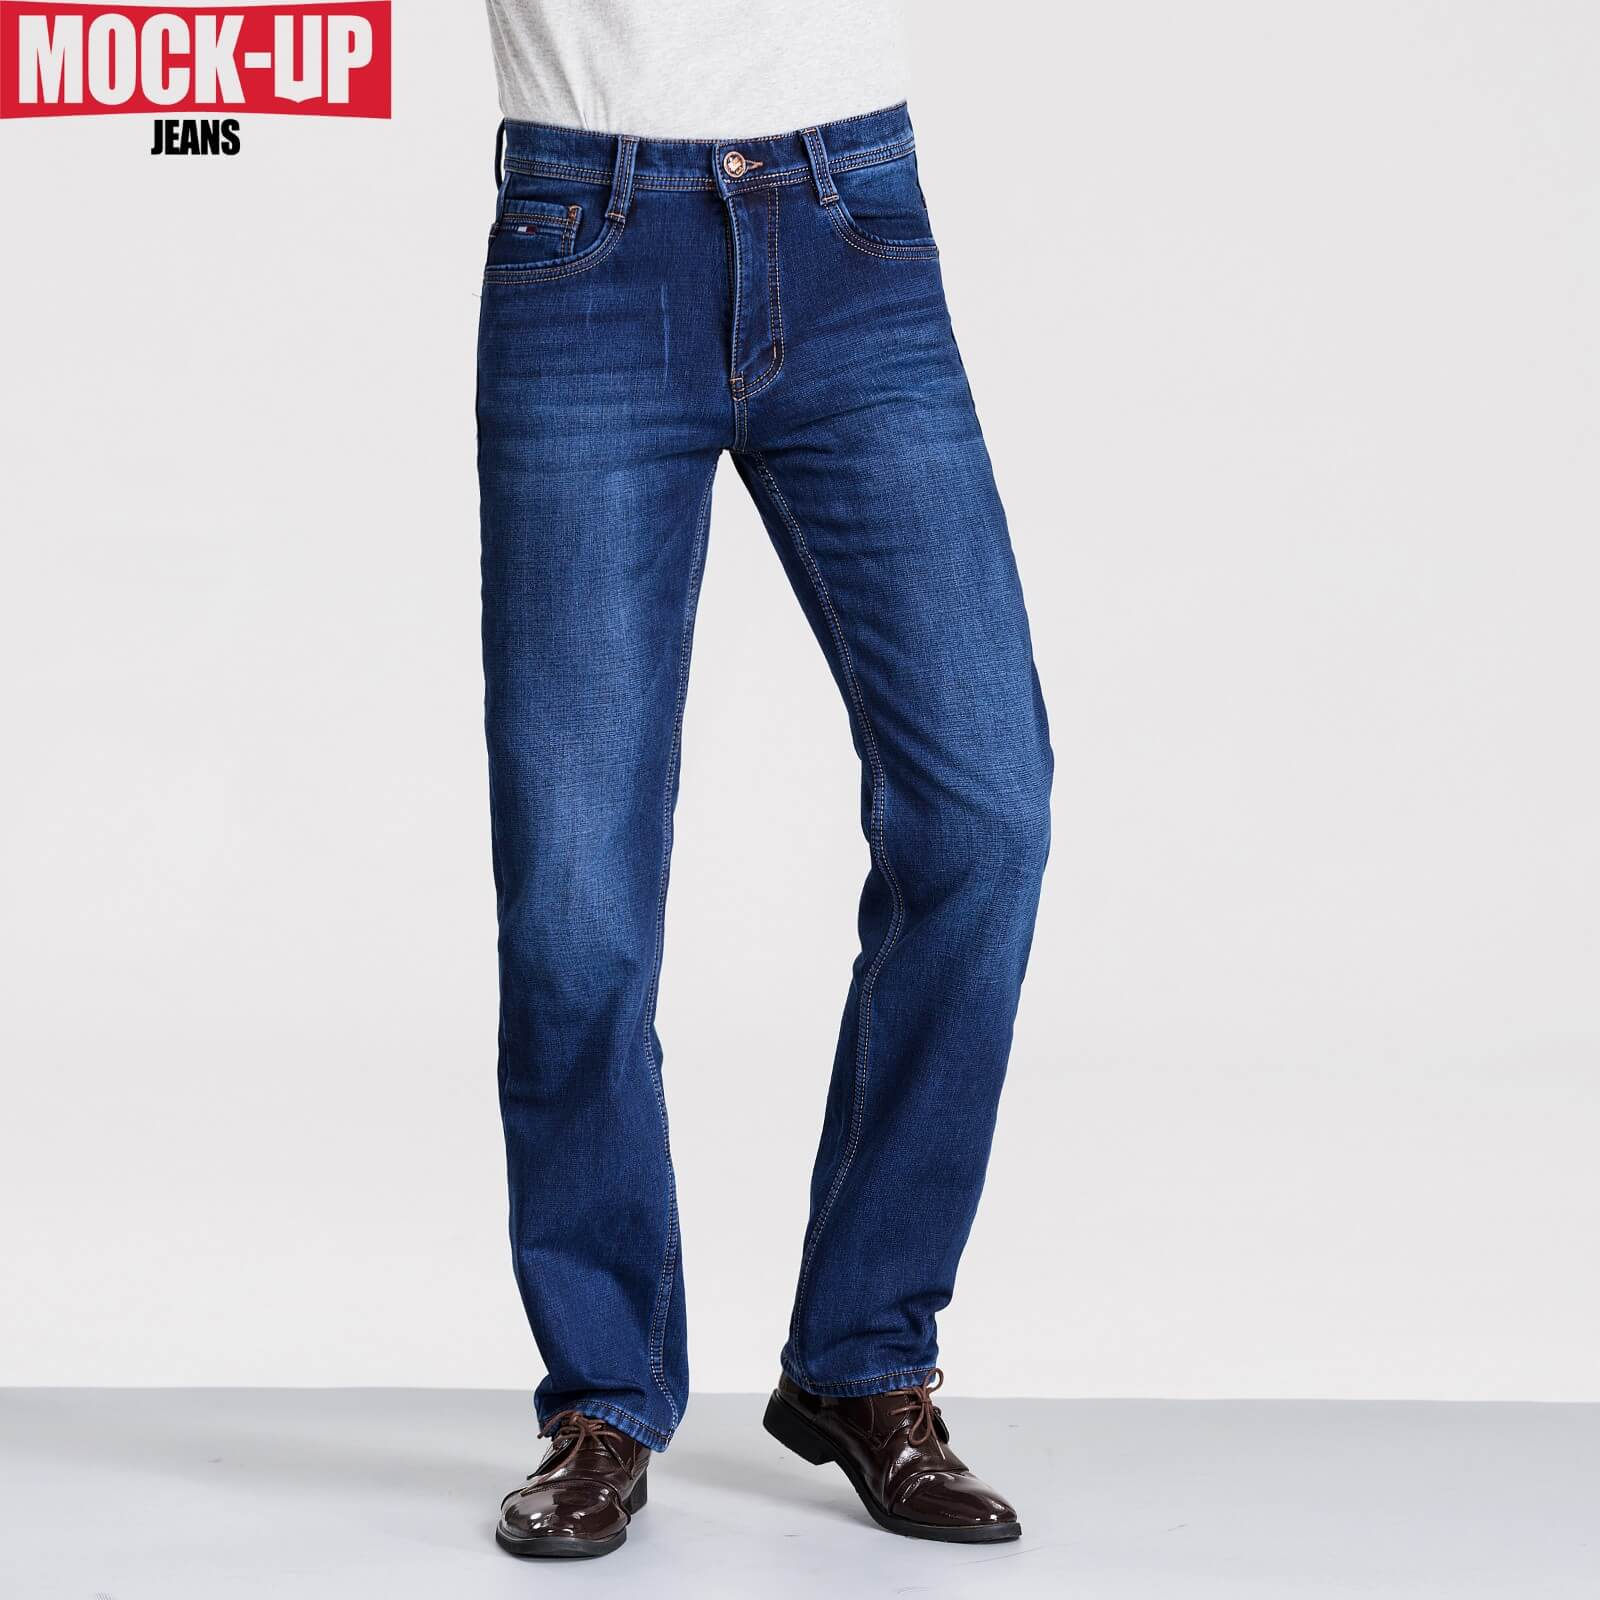 MOCK UP Brand Dsq  Jeans Classic Stretch Denim Slightly Flare Sky Blue Jeans Dsq Bike Hip Hop Style Hot Sell Plus Size 29-40